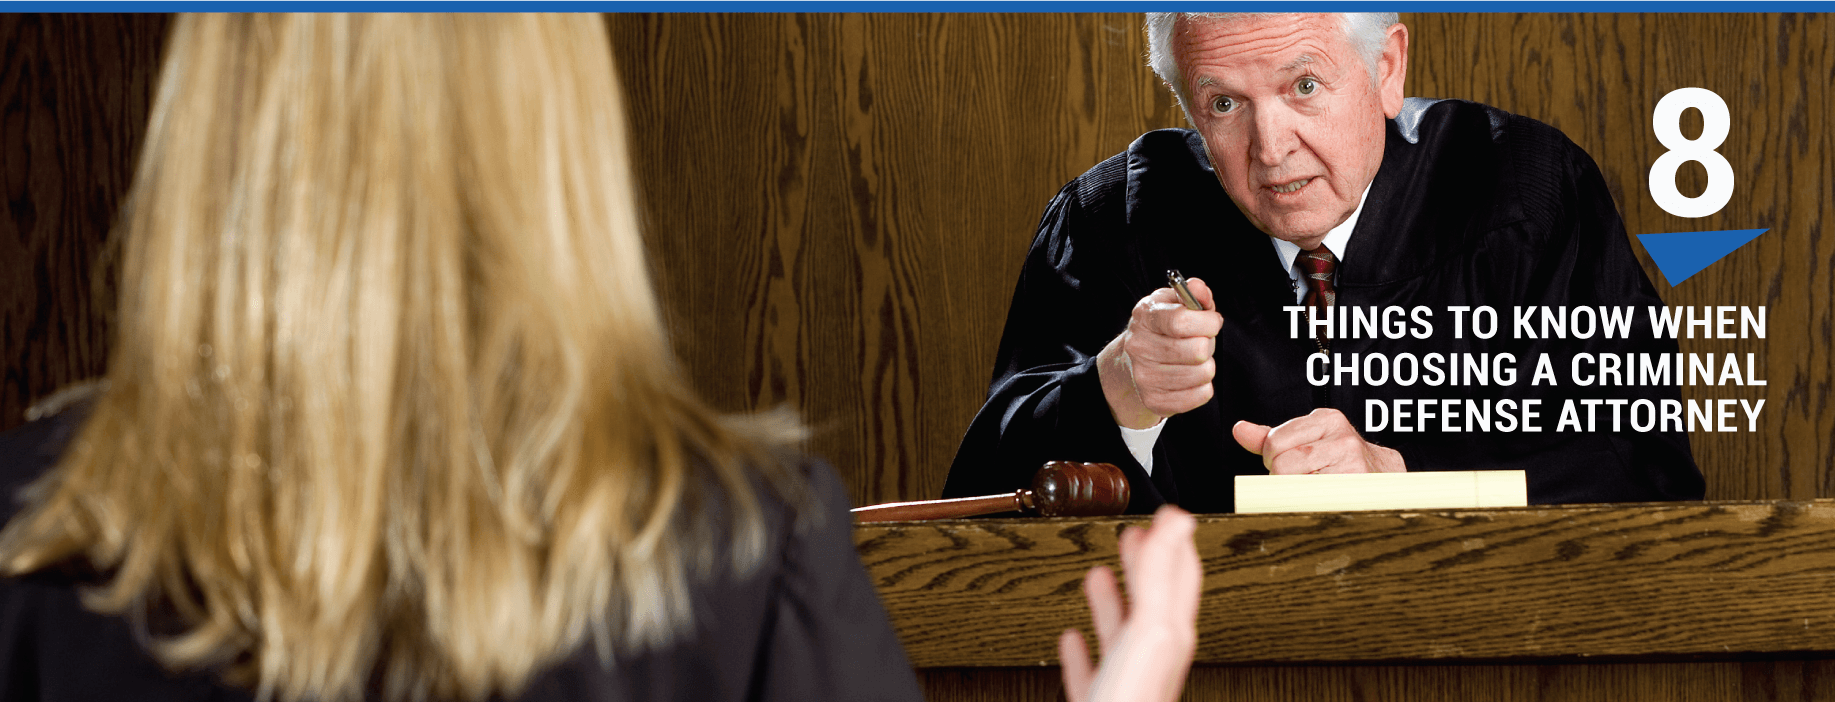 8 Things to Know When Choosing a Criminal Defense Attorney